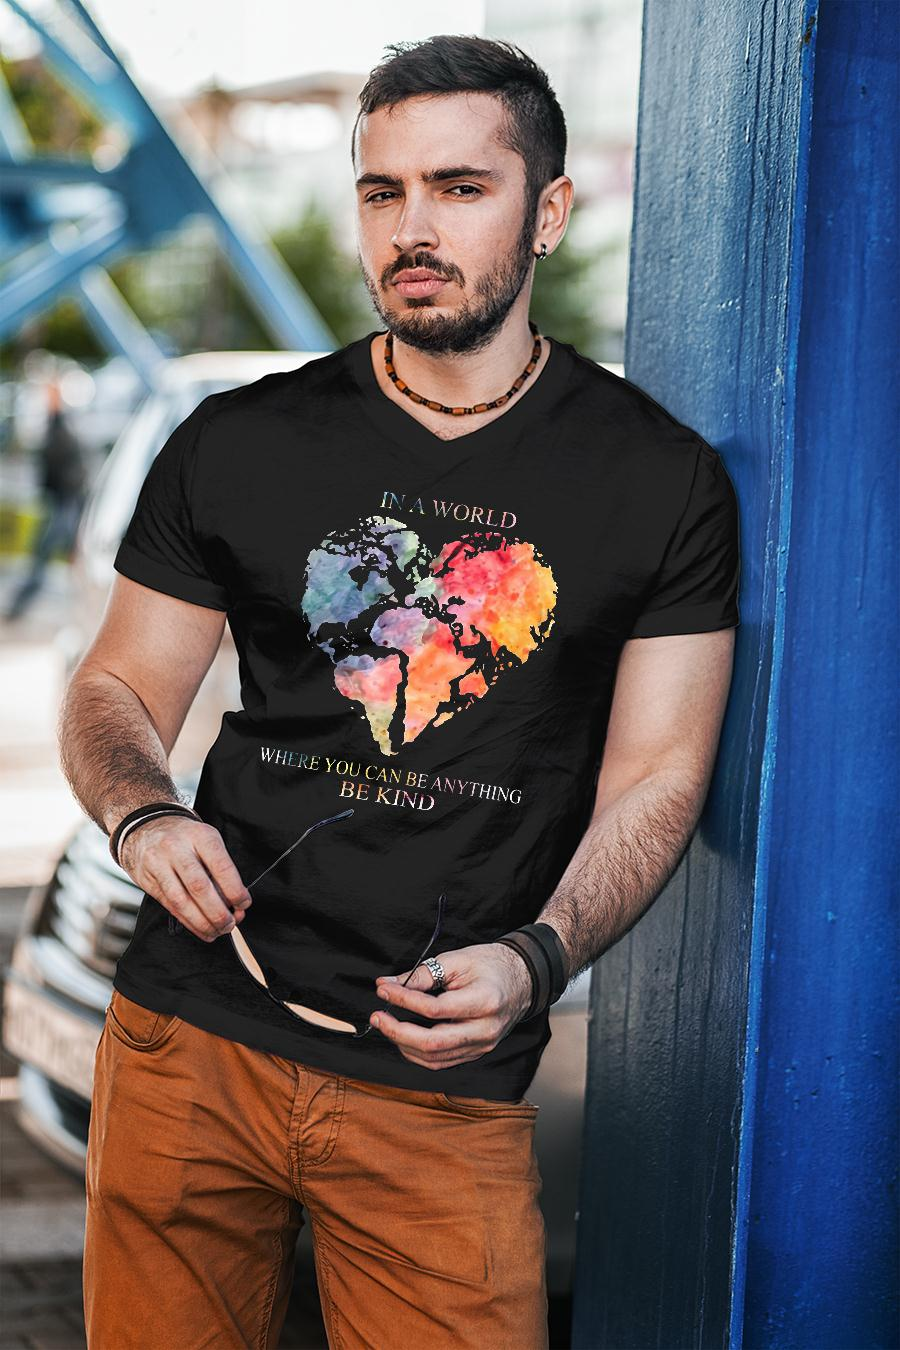 521403683 Earth Heart In a world where you can be anything be kind shirt unisex